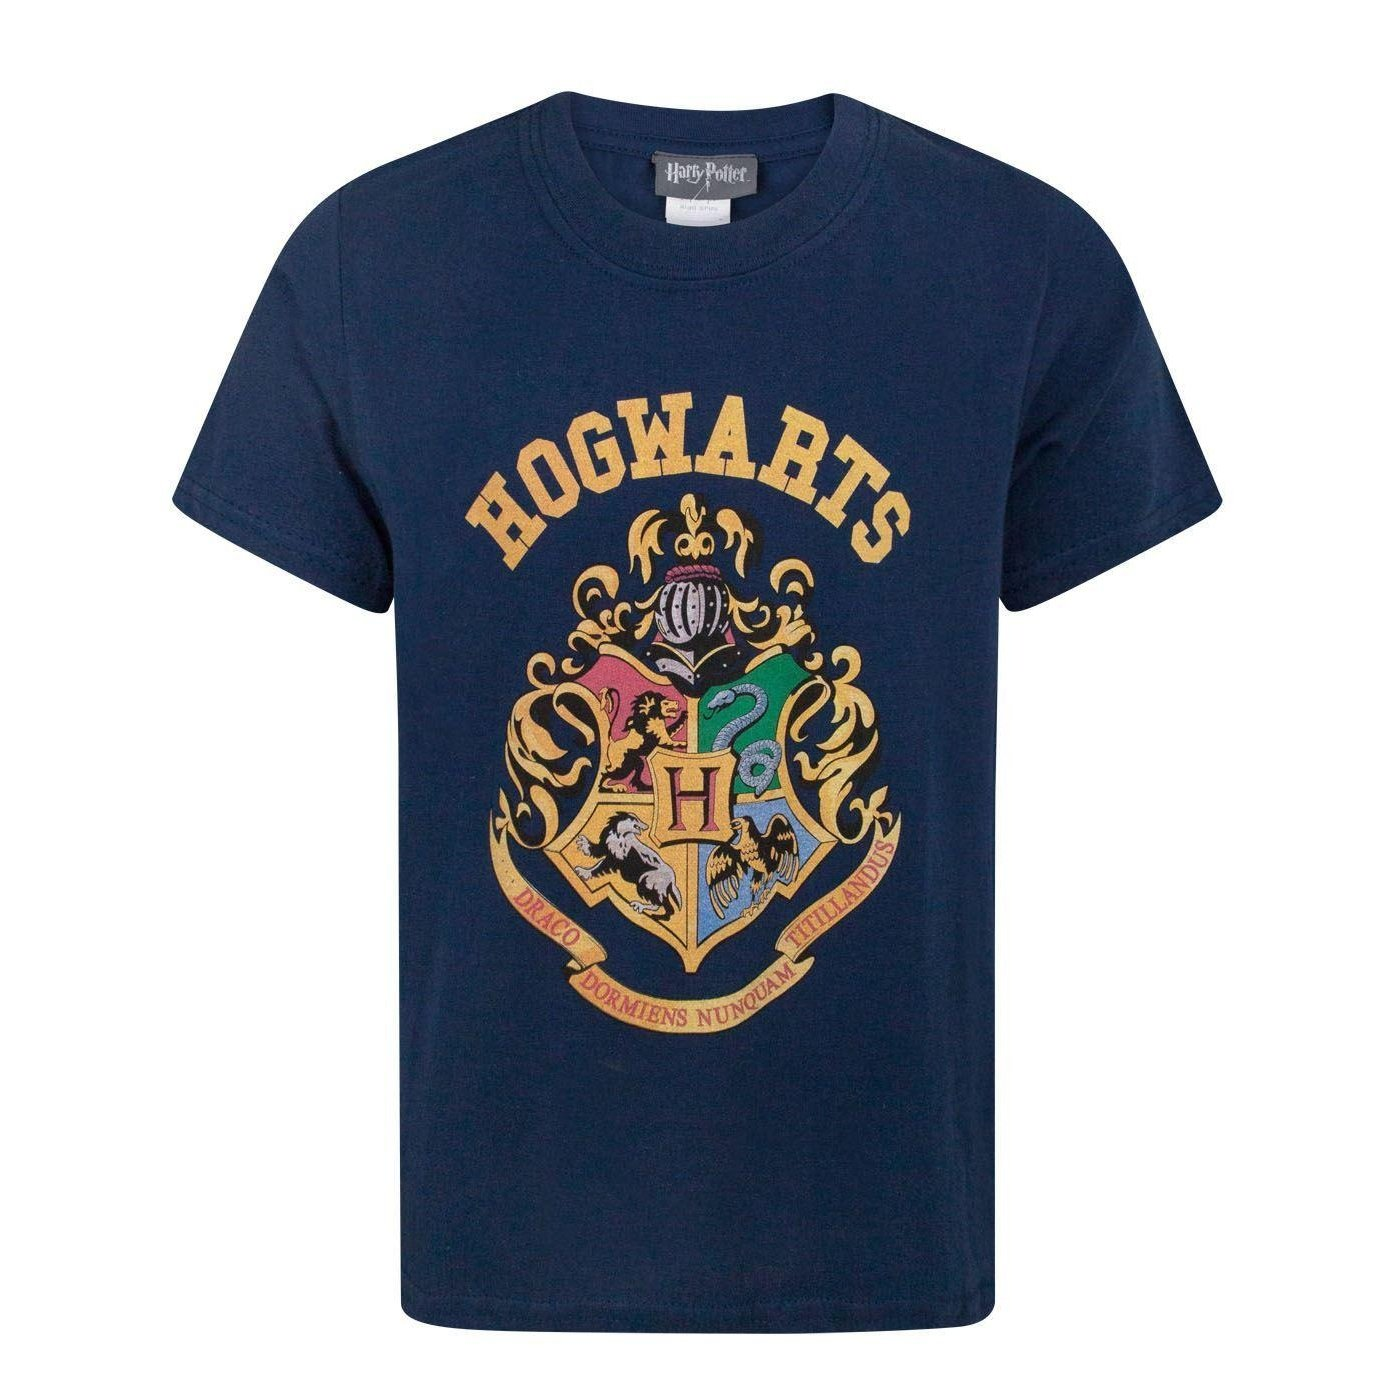 Harry Potter Gryffindor Crest Boys T-Shirt